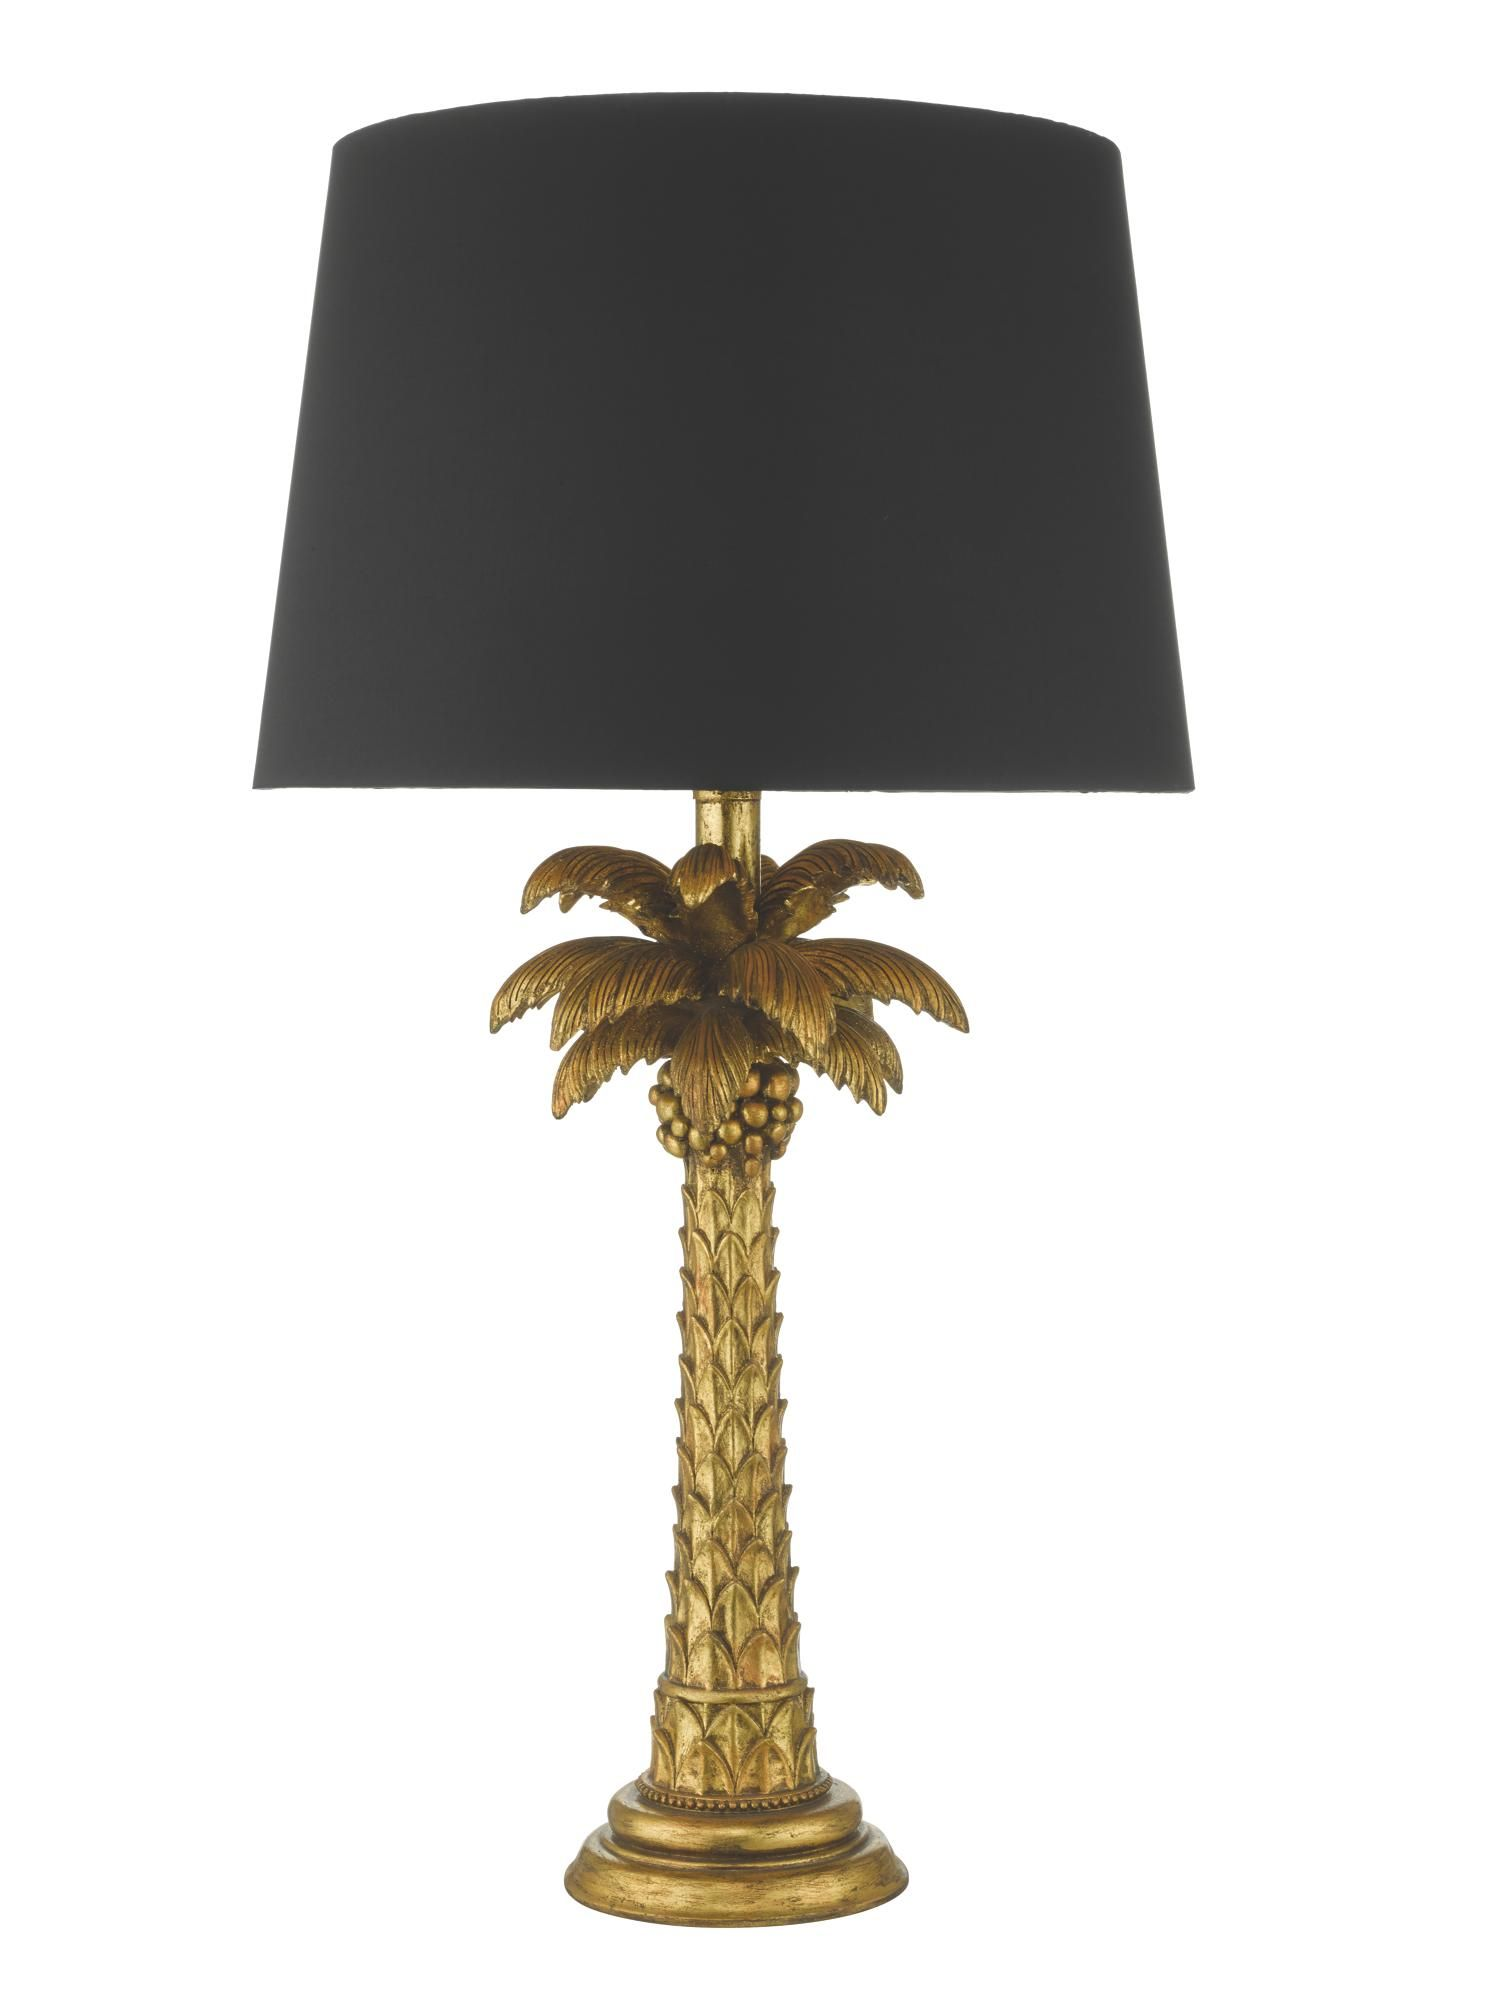 Buy Your Biba Paradise Palm Tree Table Lamp Online Now At